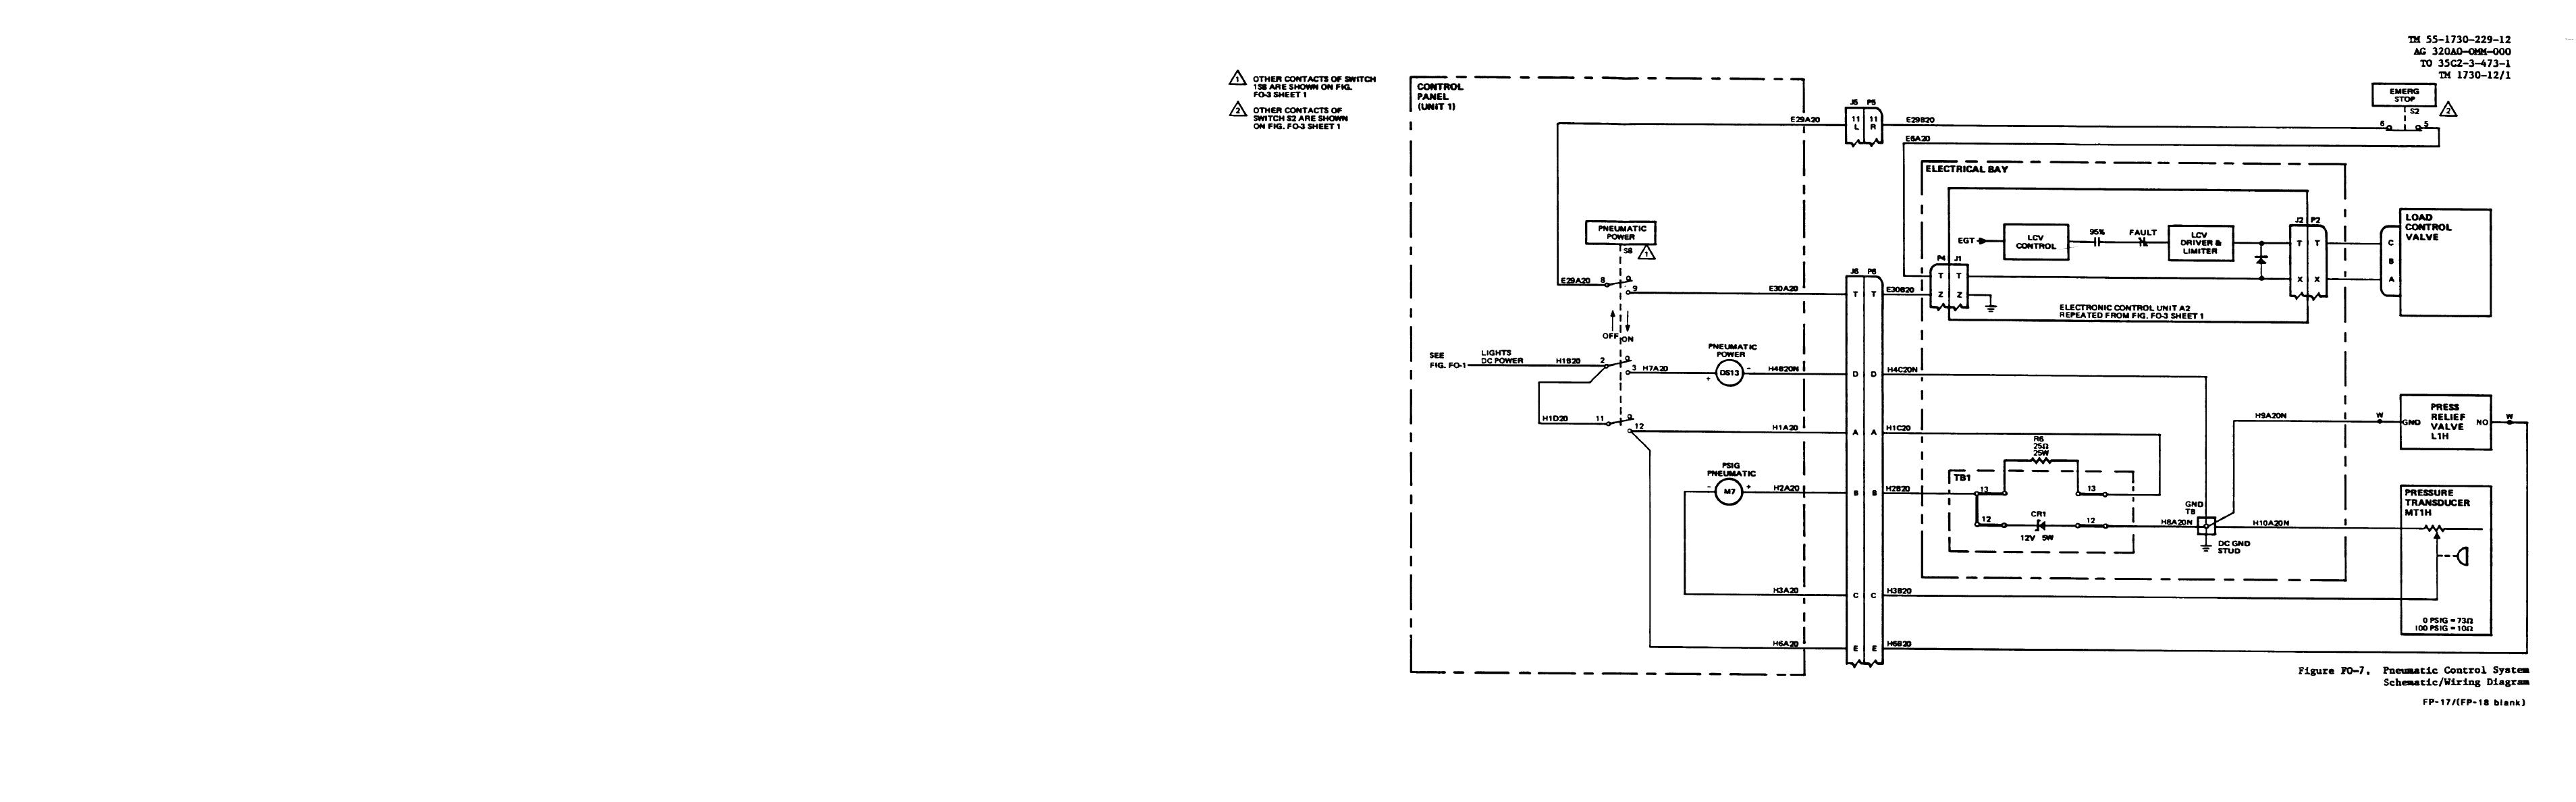 TM 55 1730 229 120550im figure fo 7 pneumatic control system schematic wiring diagram wiring diagram for access control system at soozxer.org